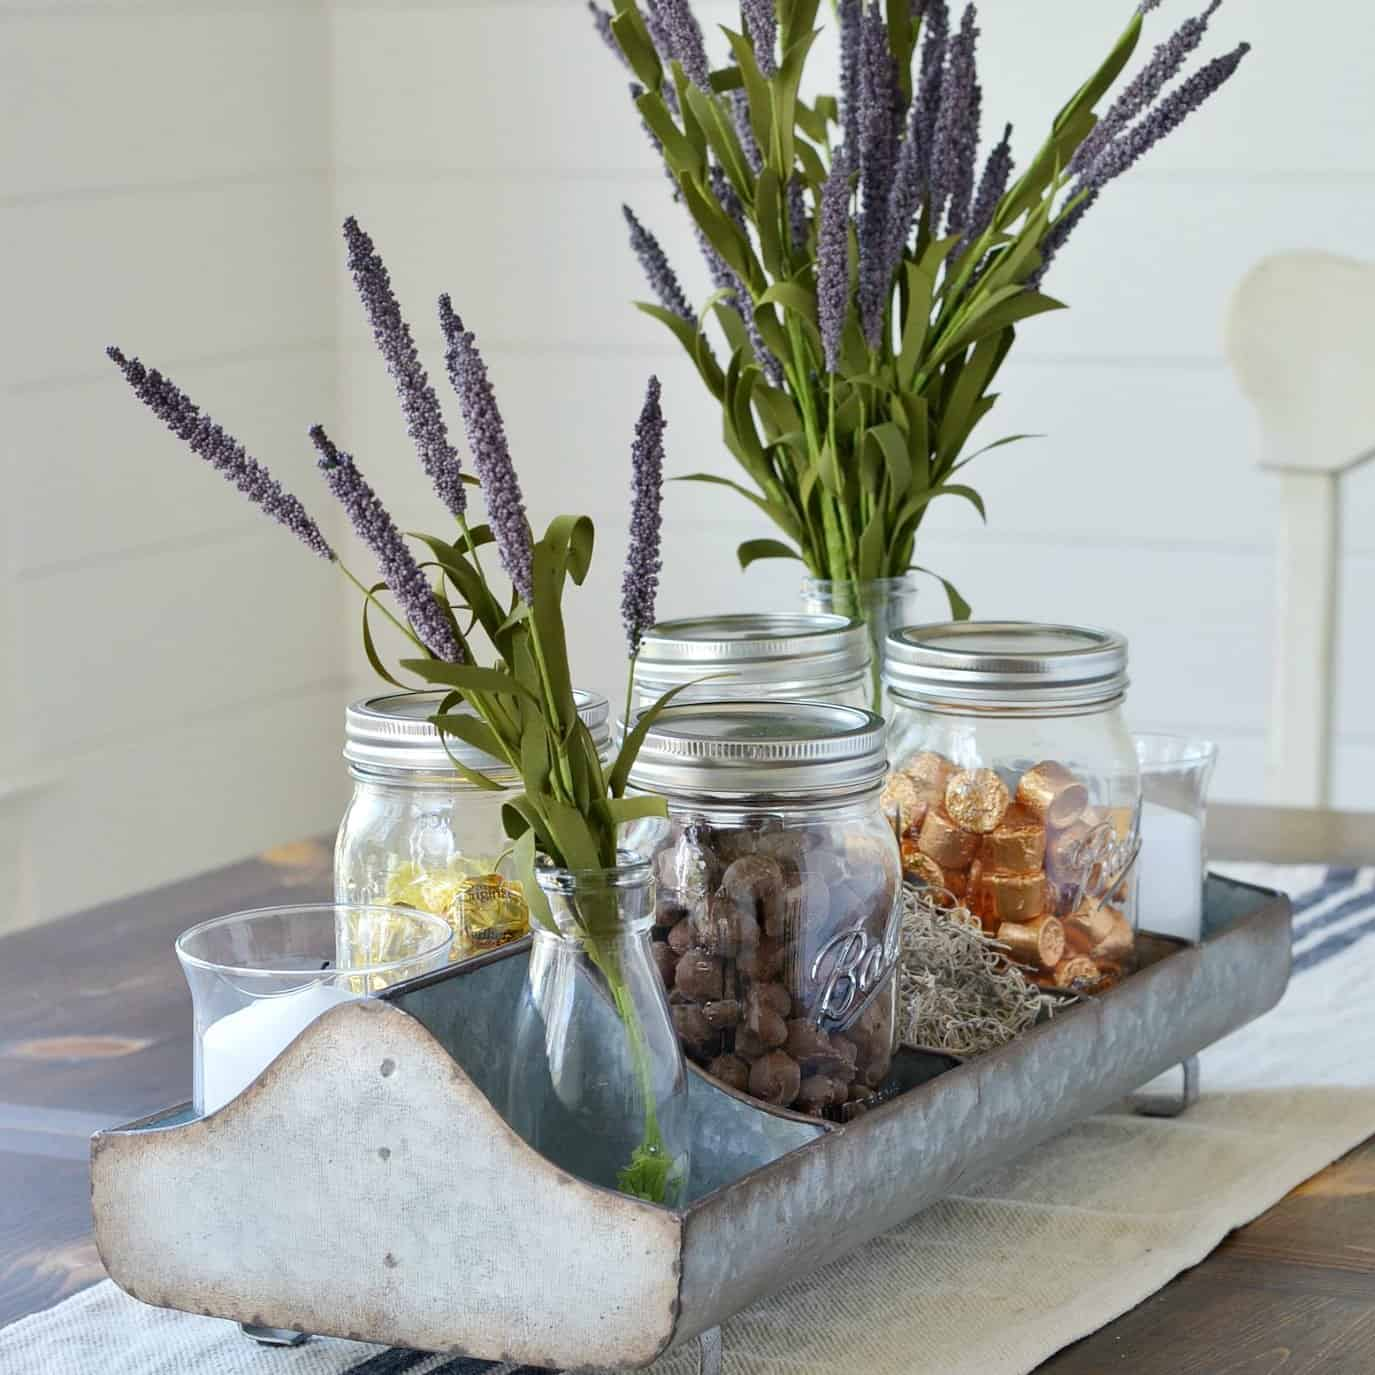 How to Style a Farmhouse Tray